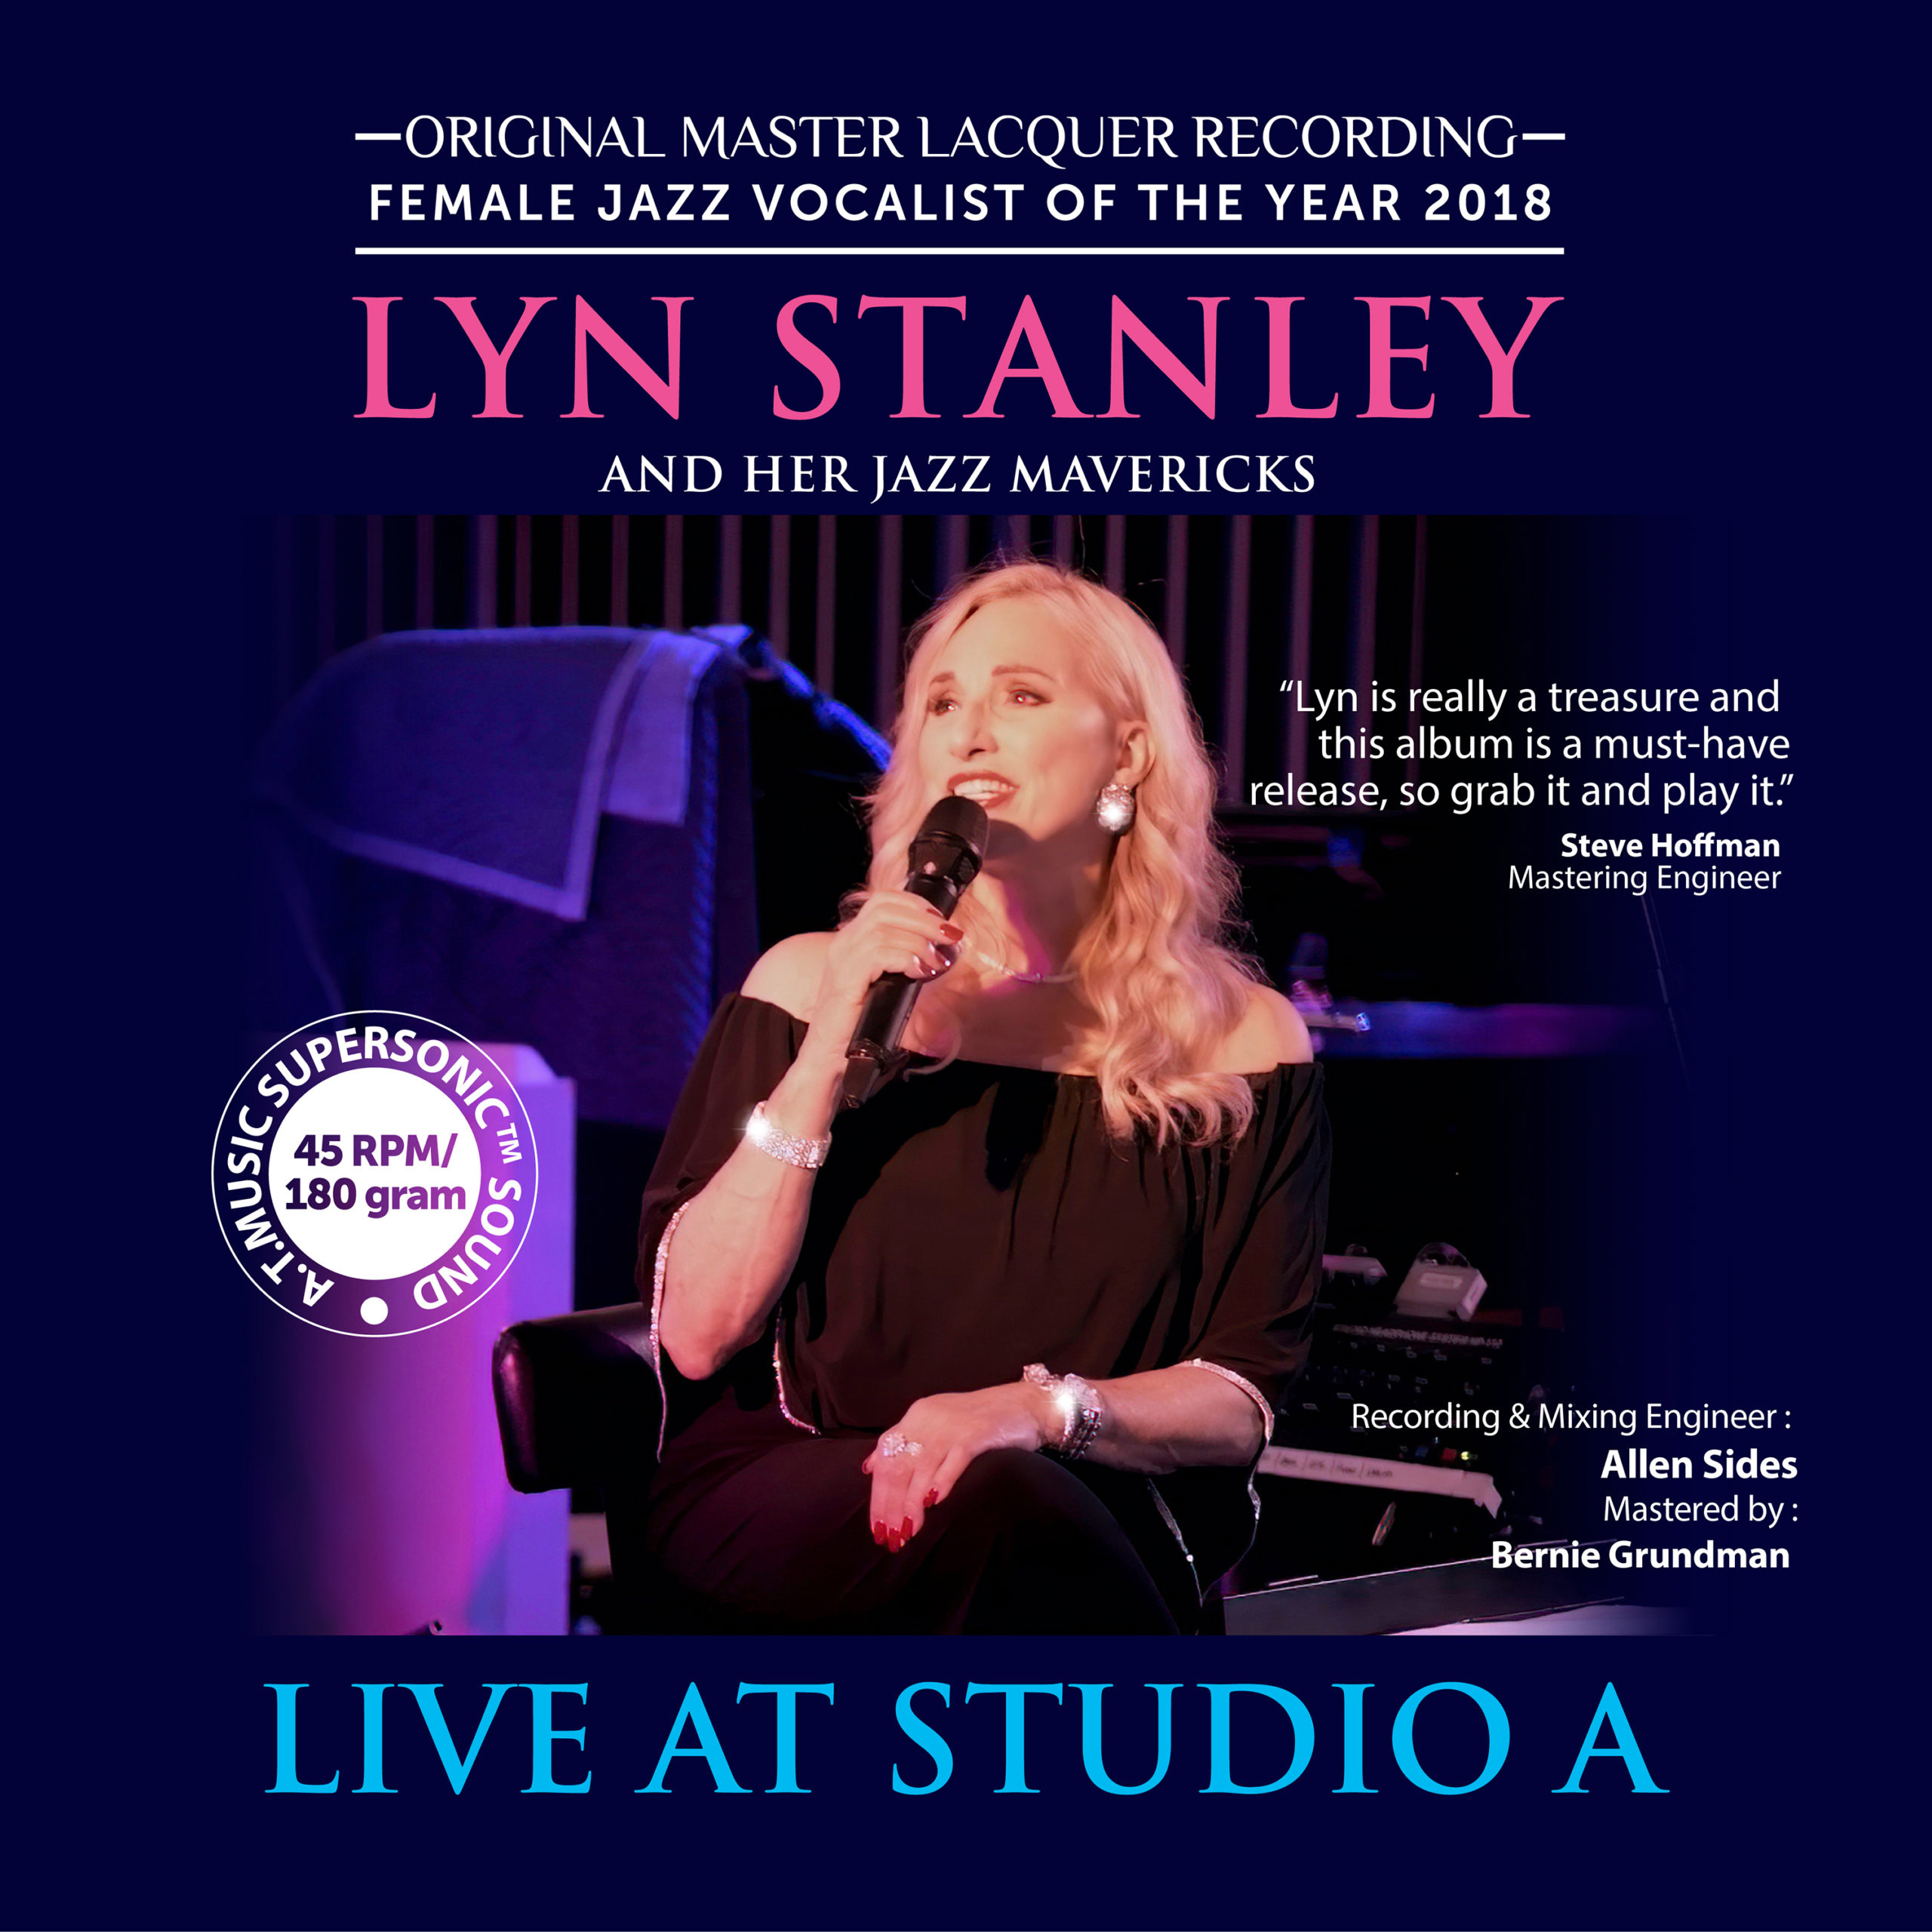 Lyn Stanley Live At Studio A Numbered Limited Edition 180g 45rpm 2LP (Autographed)